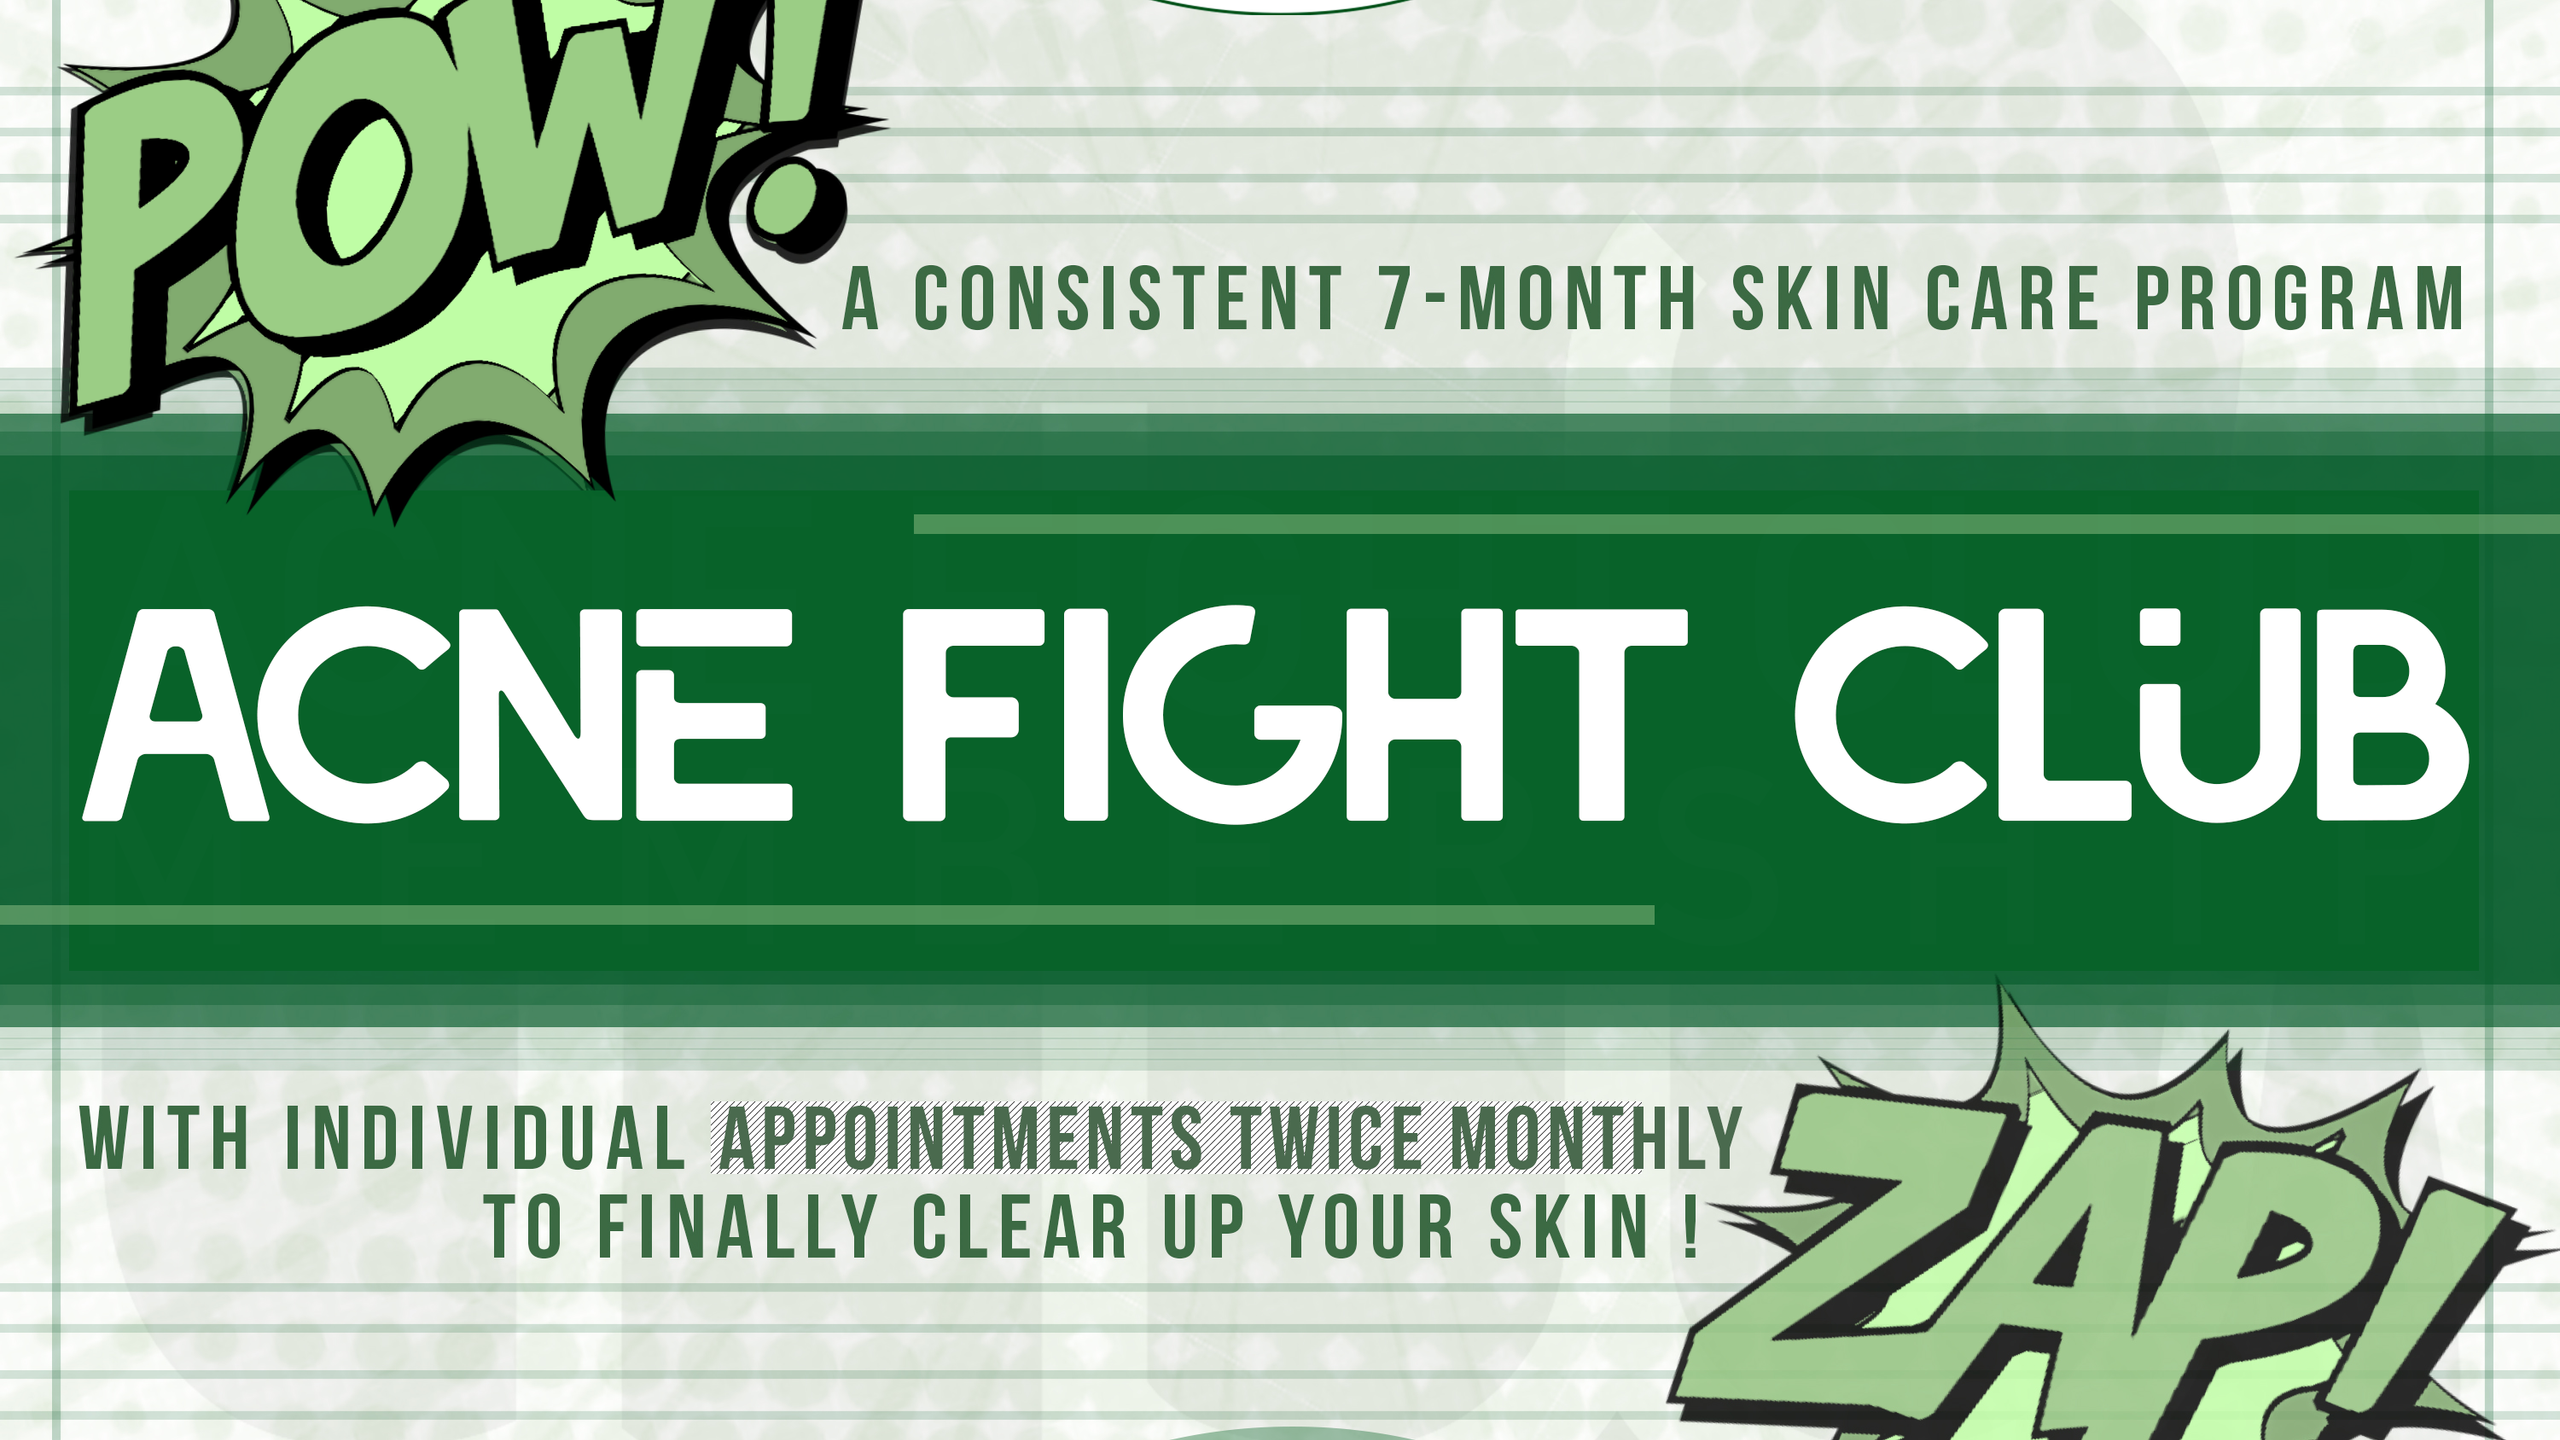 Clearer skin with Acne Fight Club